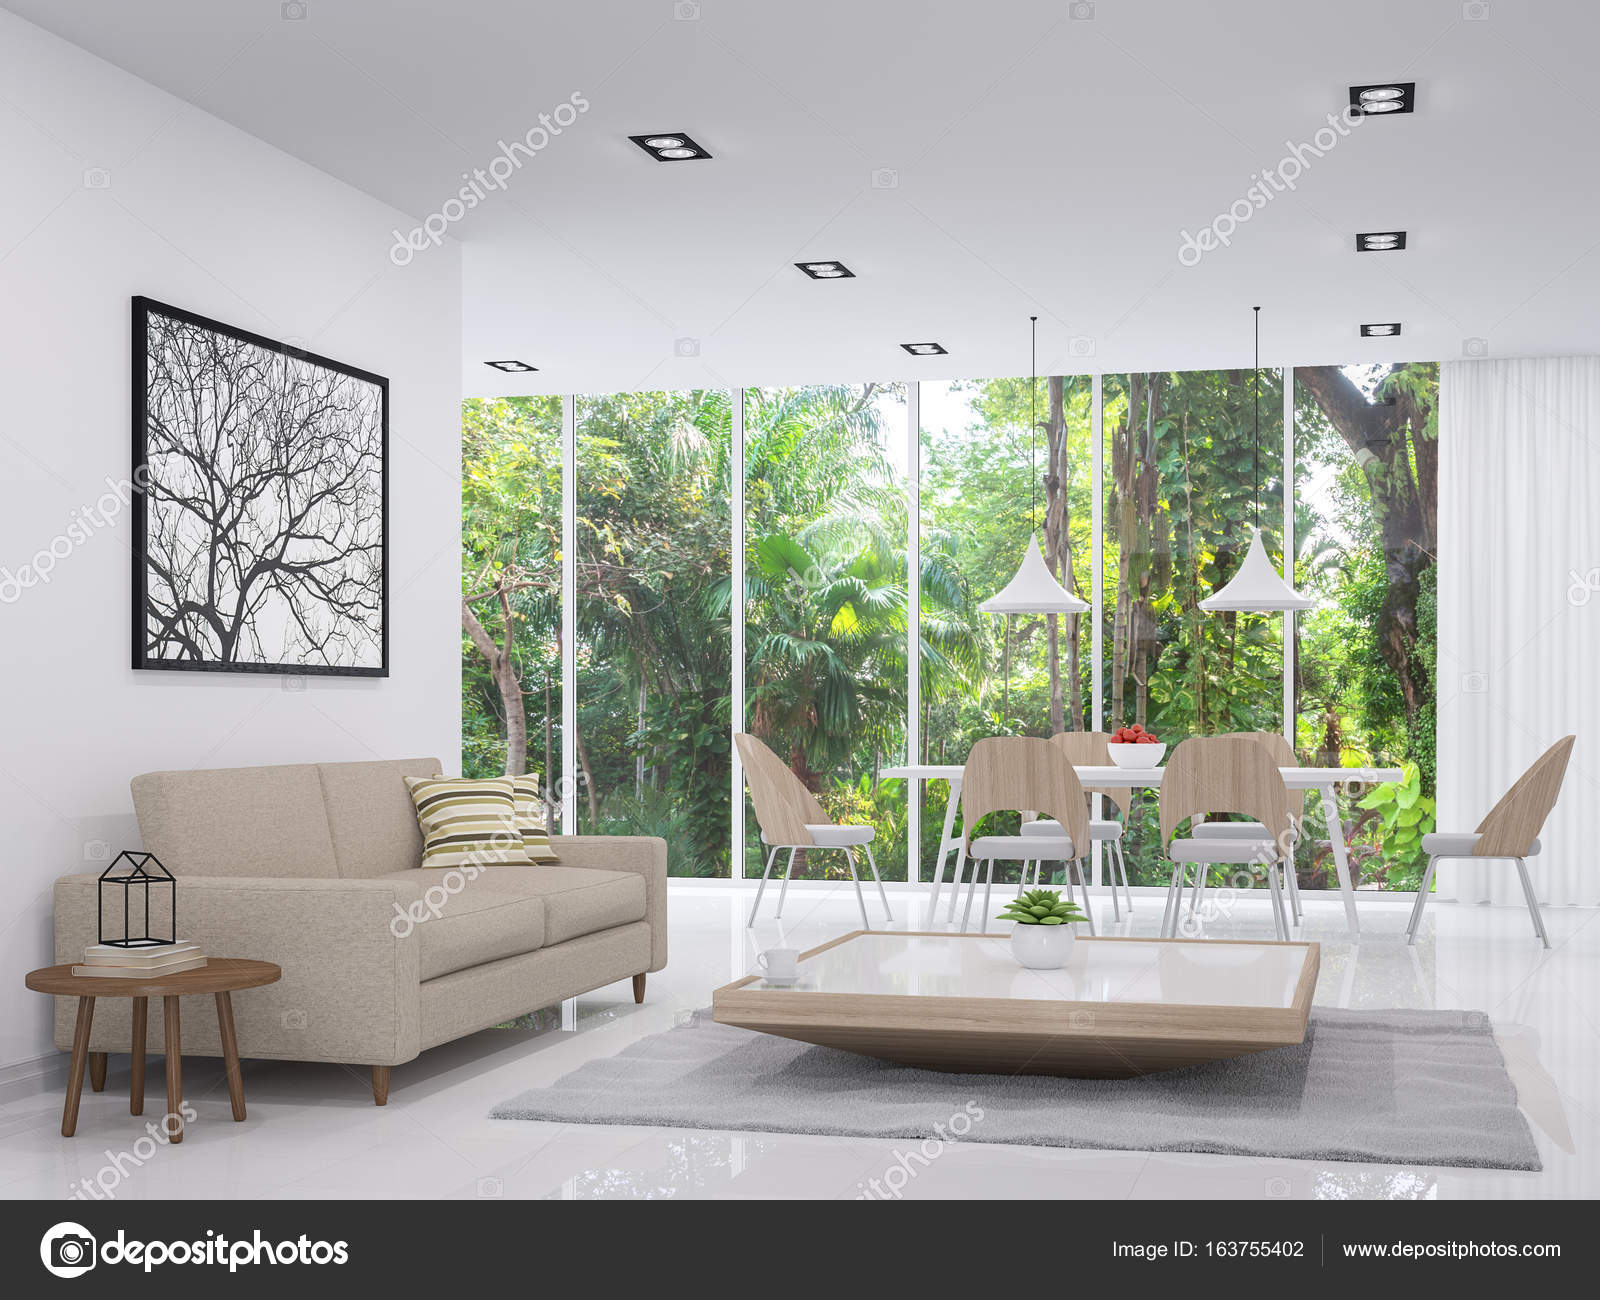 Modern White Living And Dining Room With Nature View 3d Render ImageThere Are Floor There Large Window Overlooking To The Garden